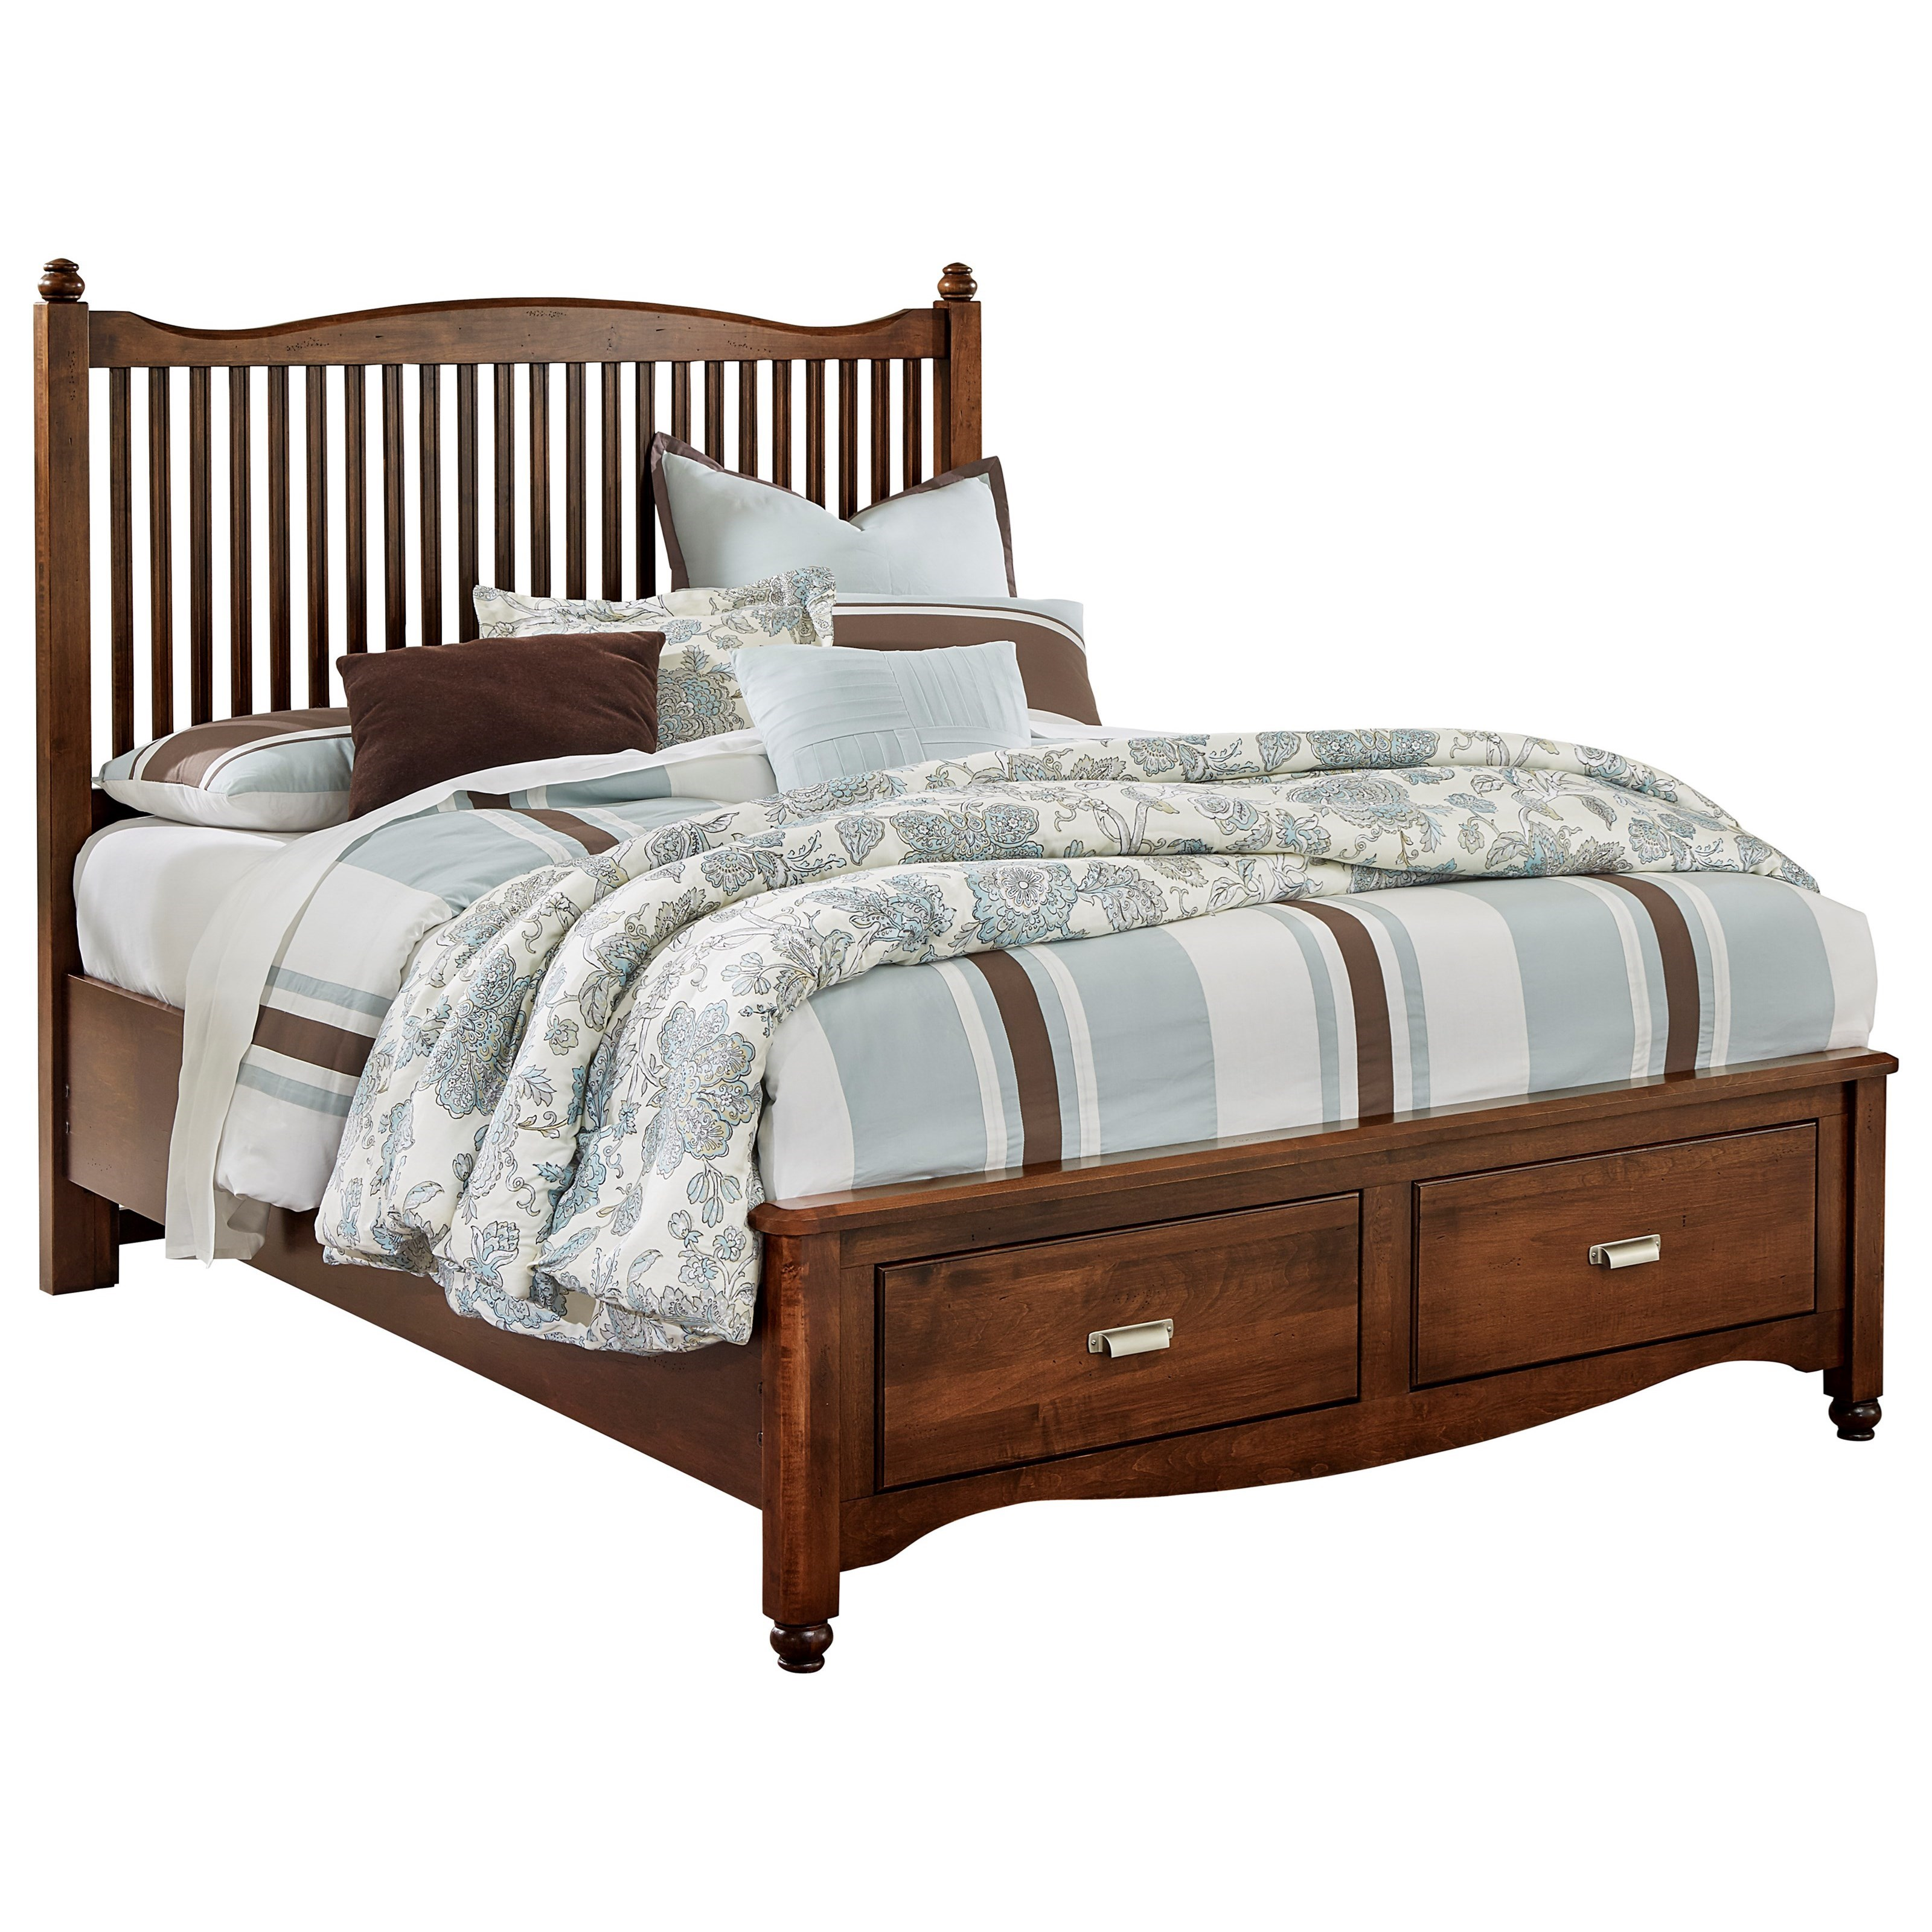 Vaughan Bassett American Maple Queen Slat Storage Bed - Item Number: 400-557+050B+502+555T